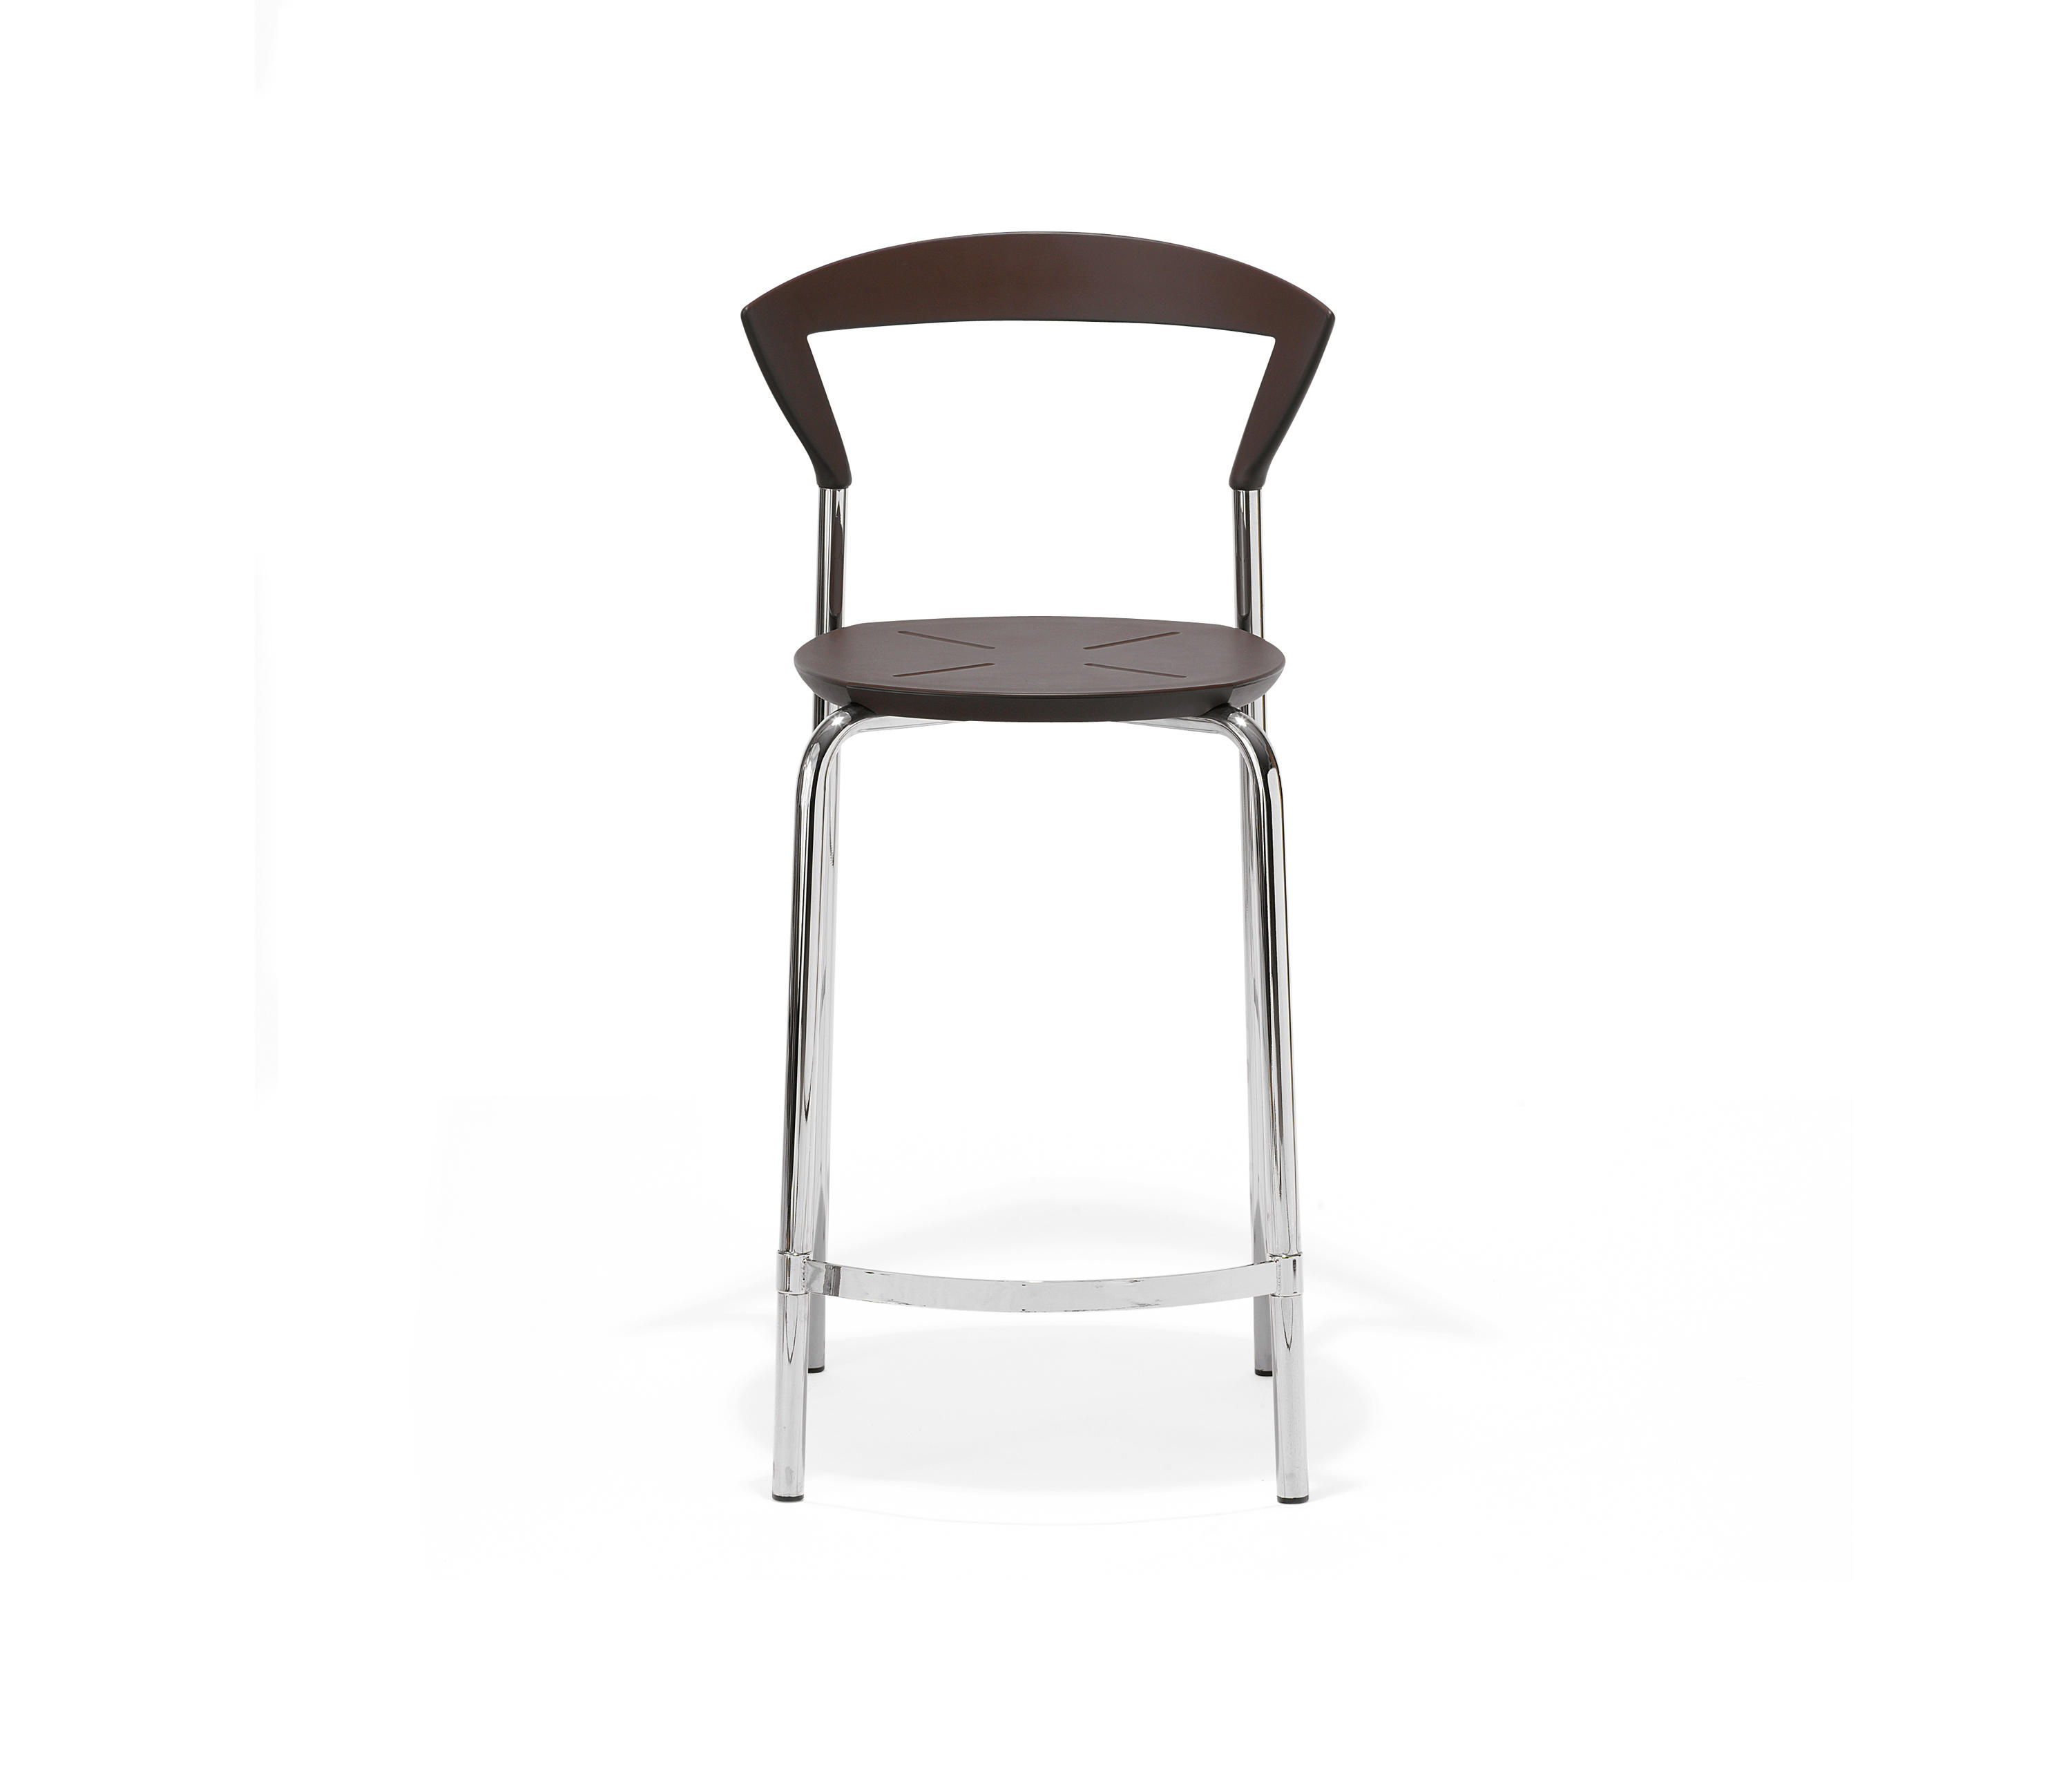 chair stool small troutman rocking chairs opus bar stools from magnus olesen